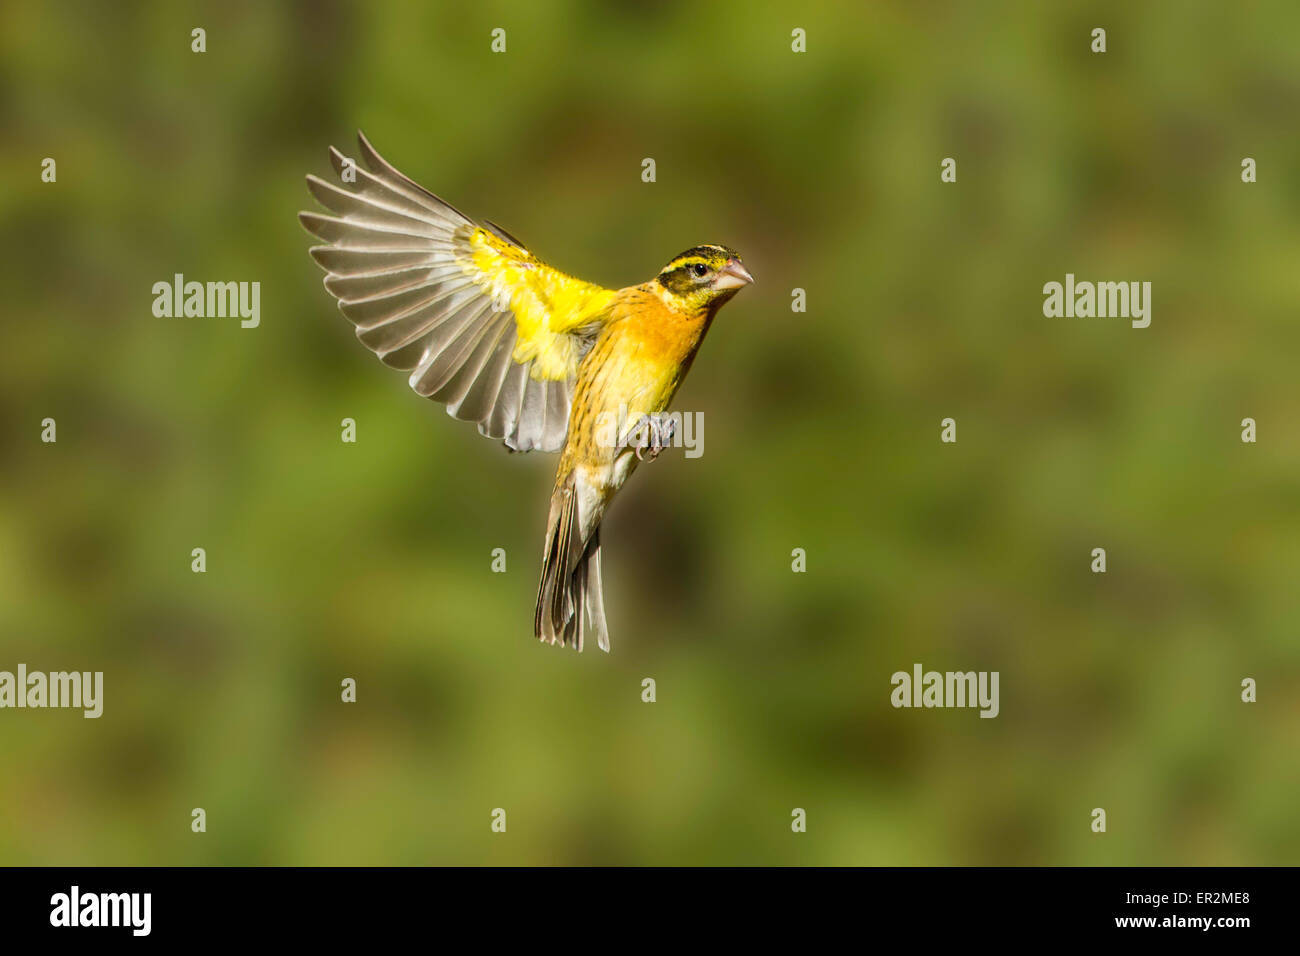 Black-headed Grosbeak  Pheucticus melanocephalus Santa Rita Mountains, Santa Cruz County, Arizona, United States - Stock Image